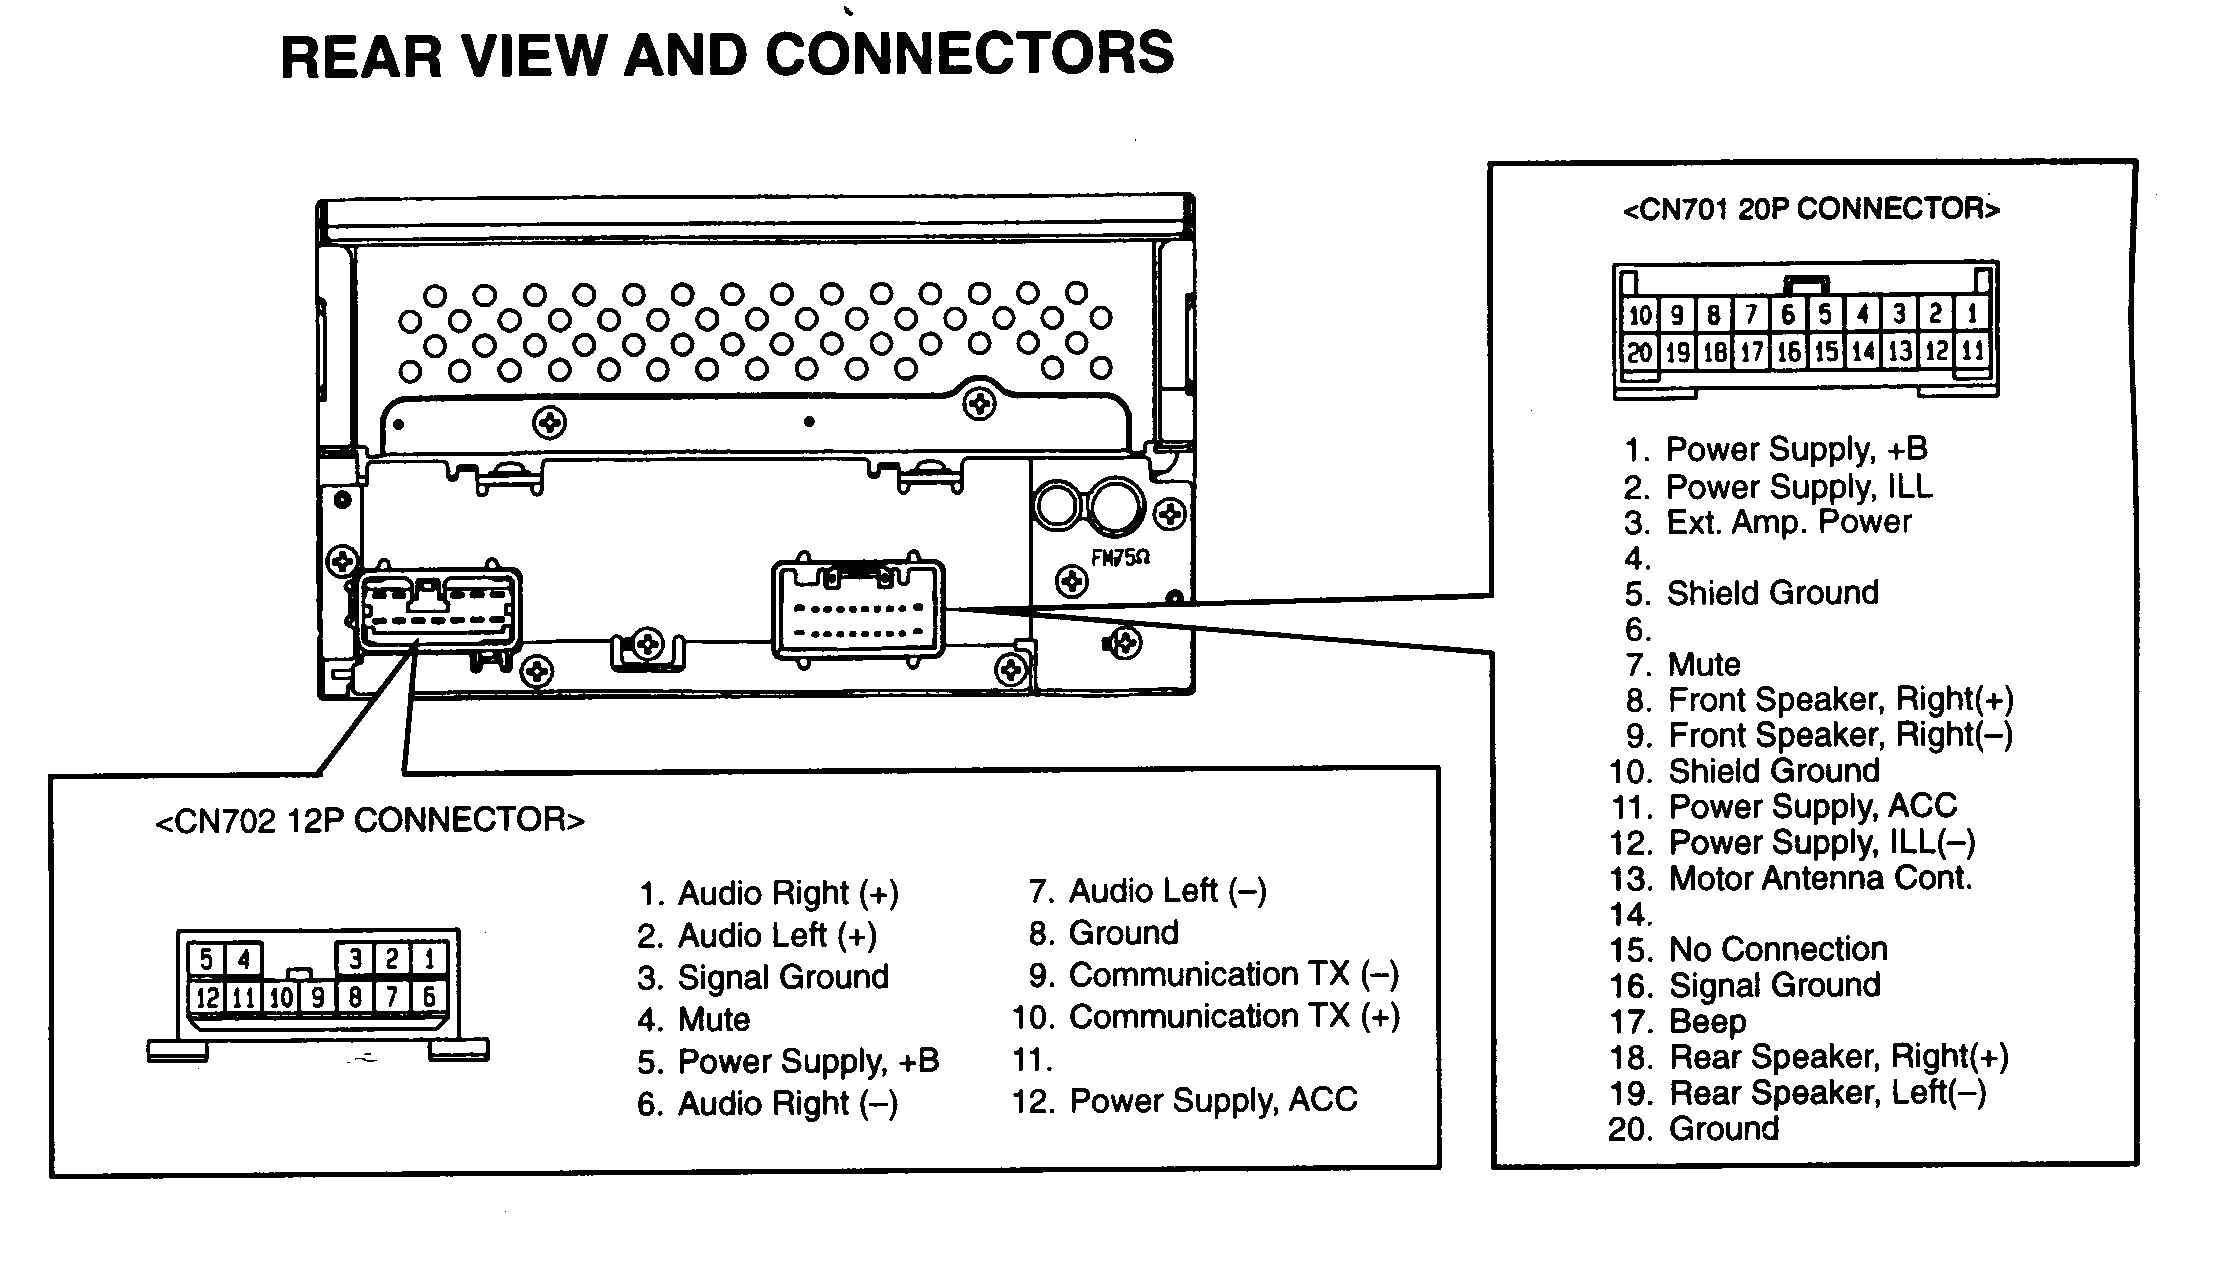 wiring diagram for bose car stereo new bose amplifier wiring diagram wiring diagram g9 of wiring diagram for bose car stereo jpg